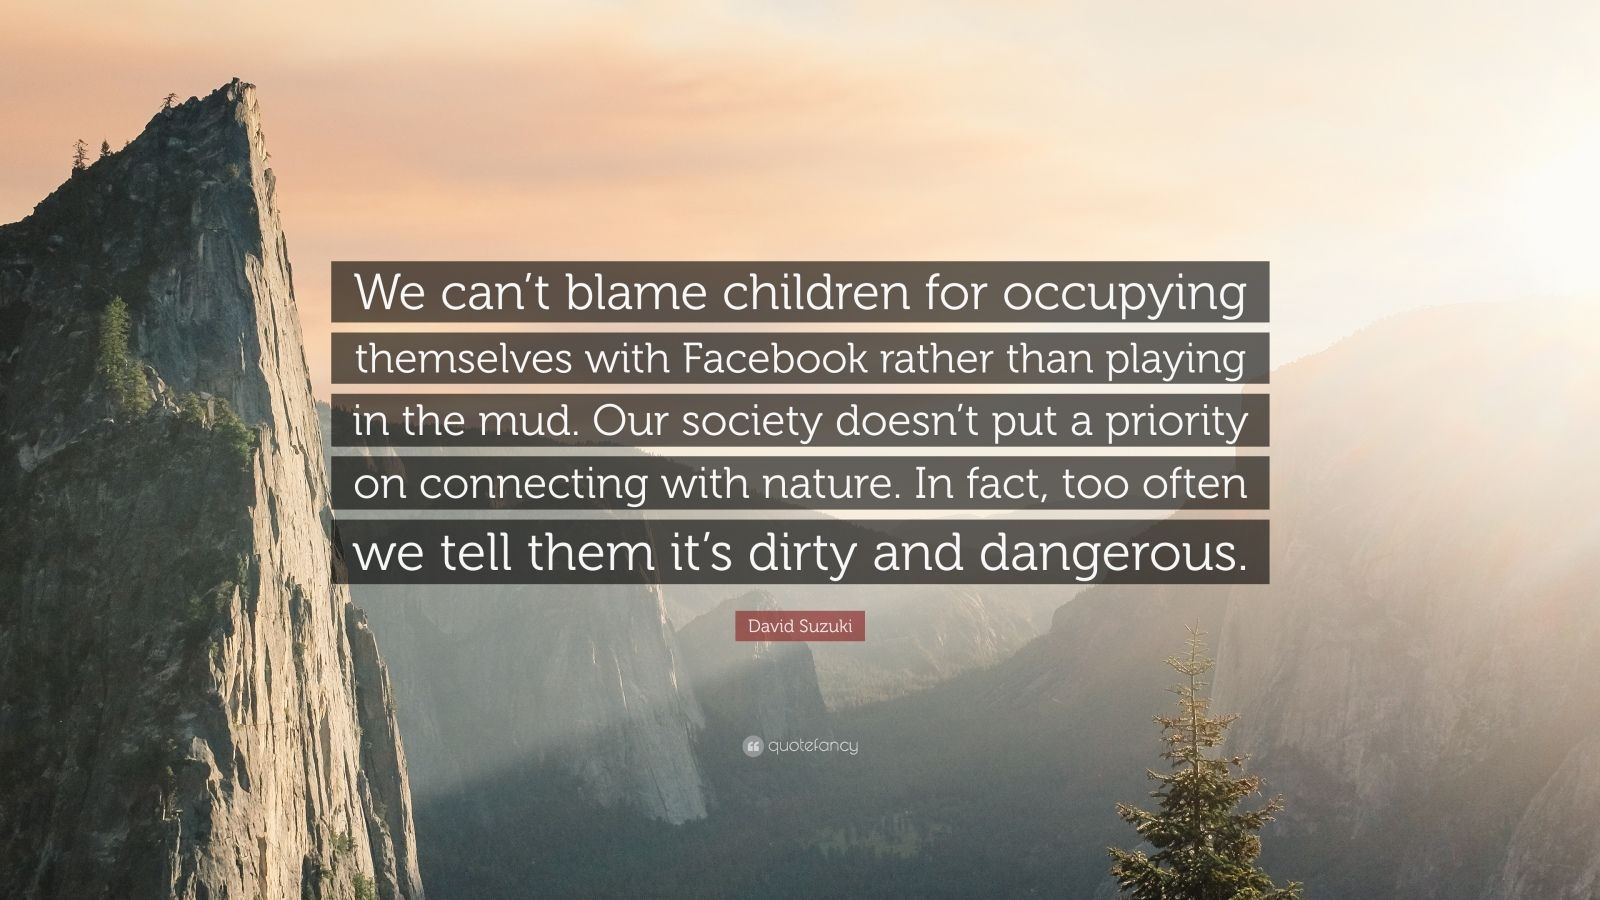 """David Suzuki Quote: """"We can't blame children for occupying themselves with Facebook rather than playing in the mud. Our society doesn't put a priority on connecting with nature. In fact, too often we tell them it's dirty and dangerous."""""""